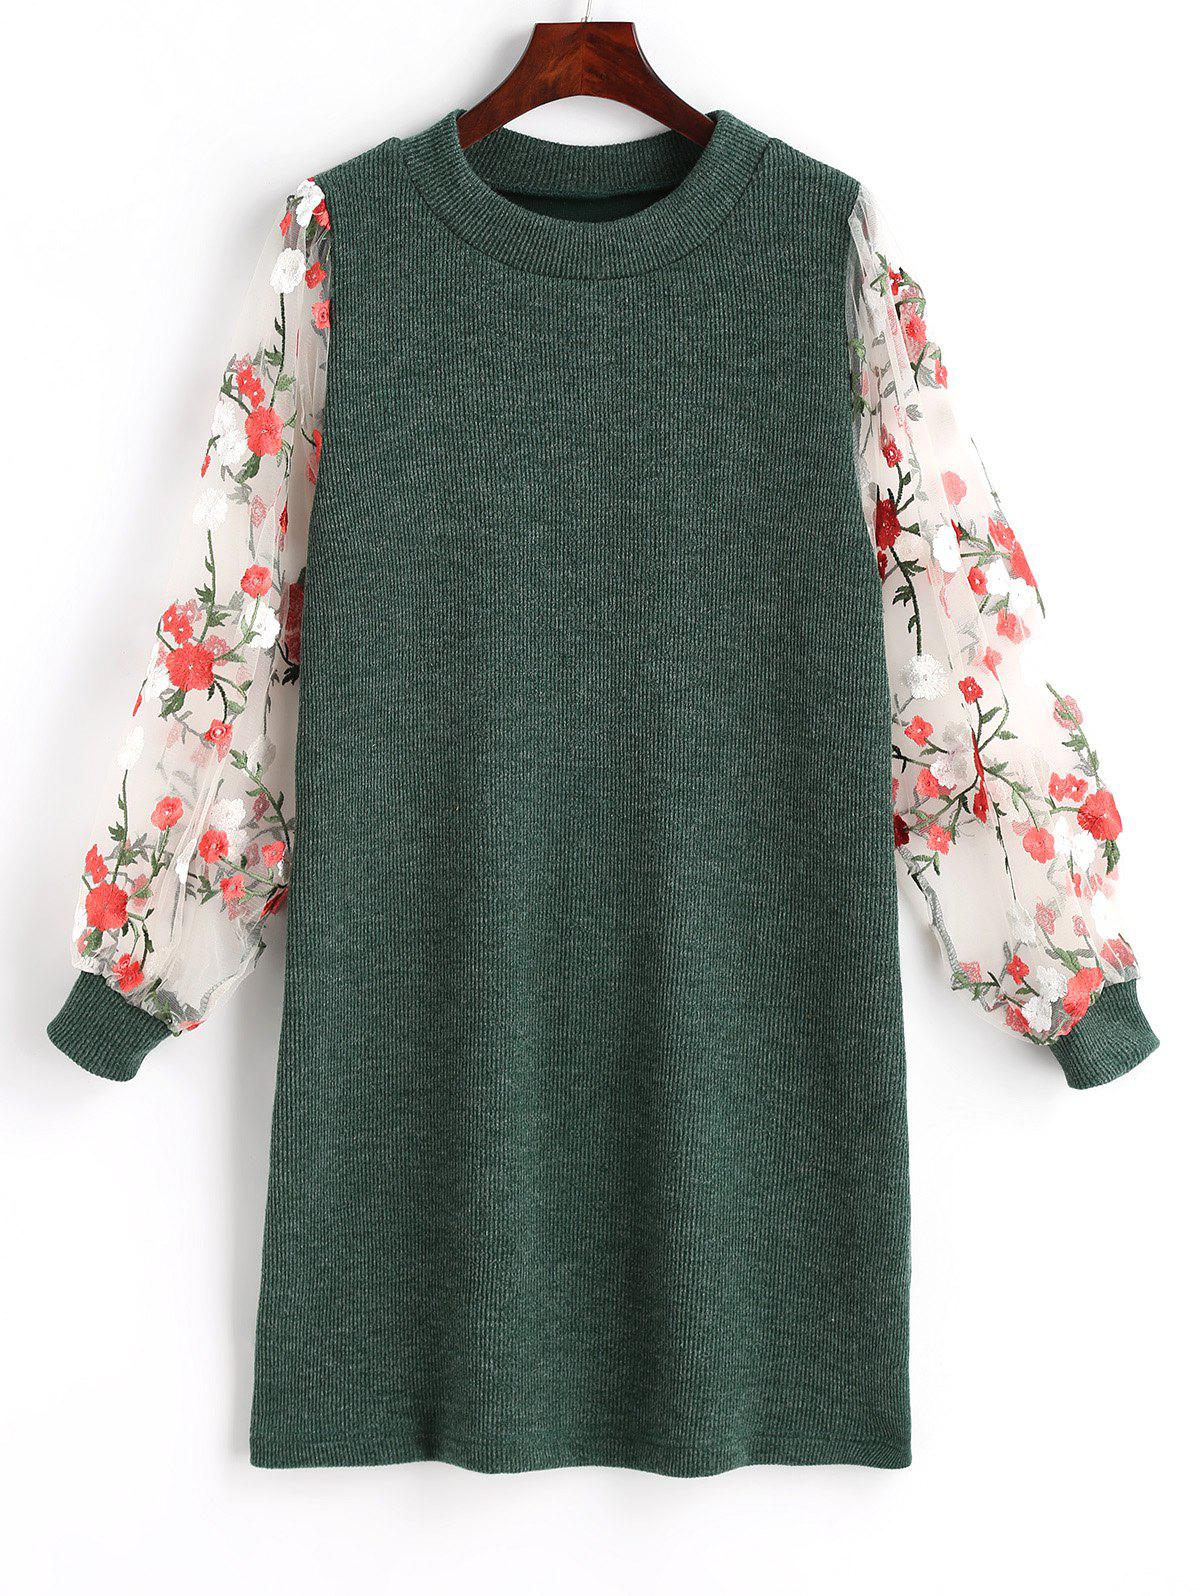 Mesh Panel Floral Mini Knit Dress - GREEN M